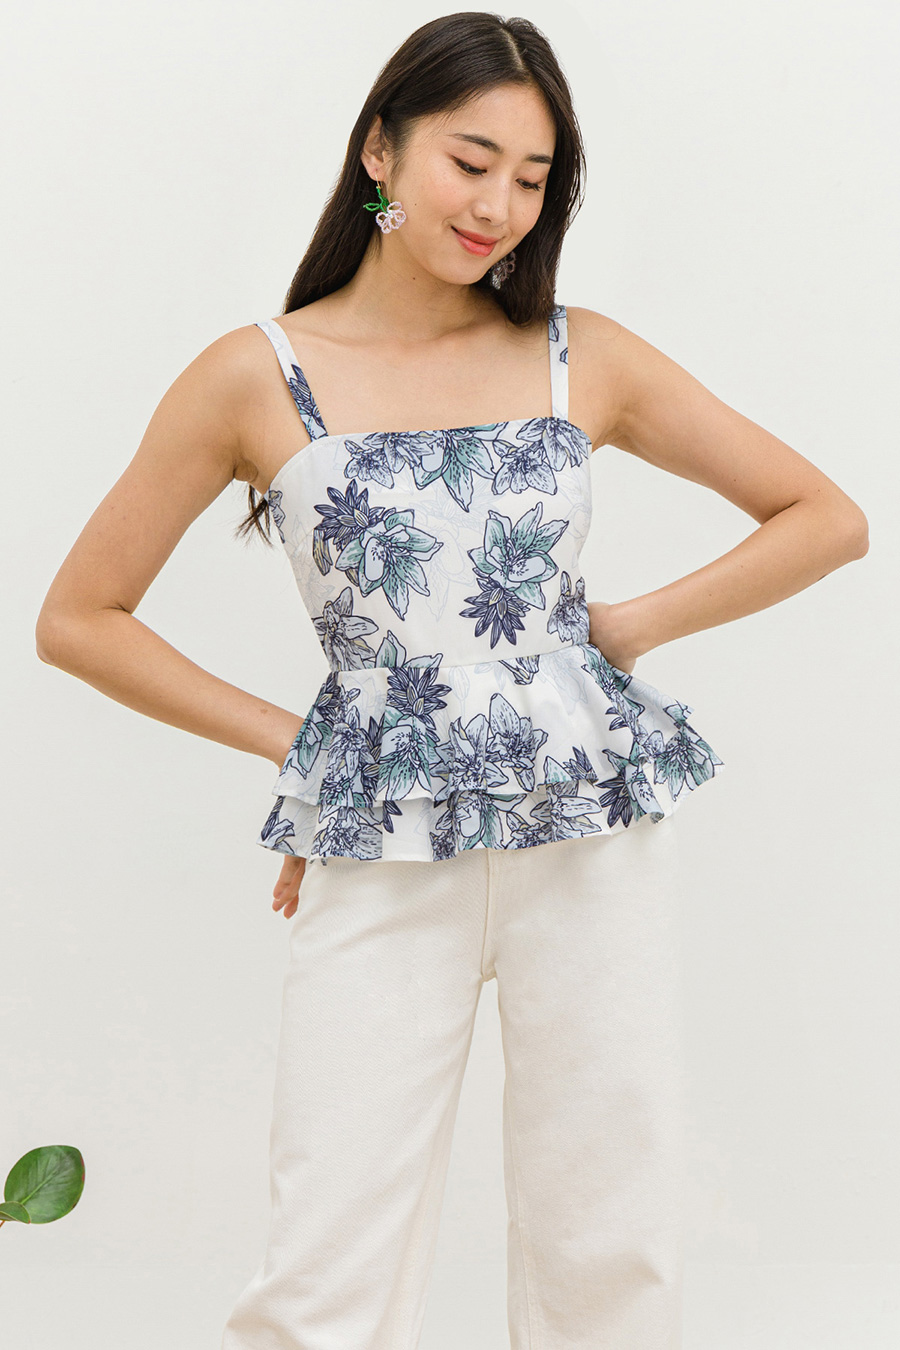 *SALE* LEONE TOP - DAYLIGHT LOTUS [BY MODPARADE]